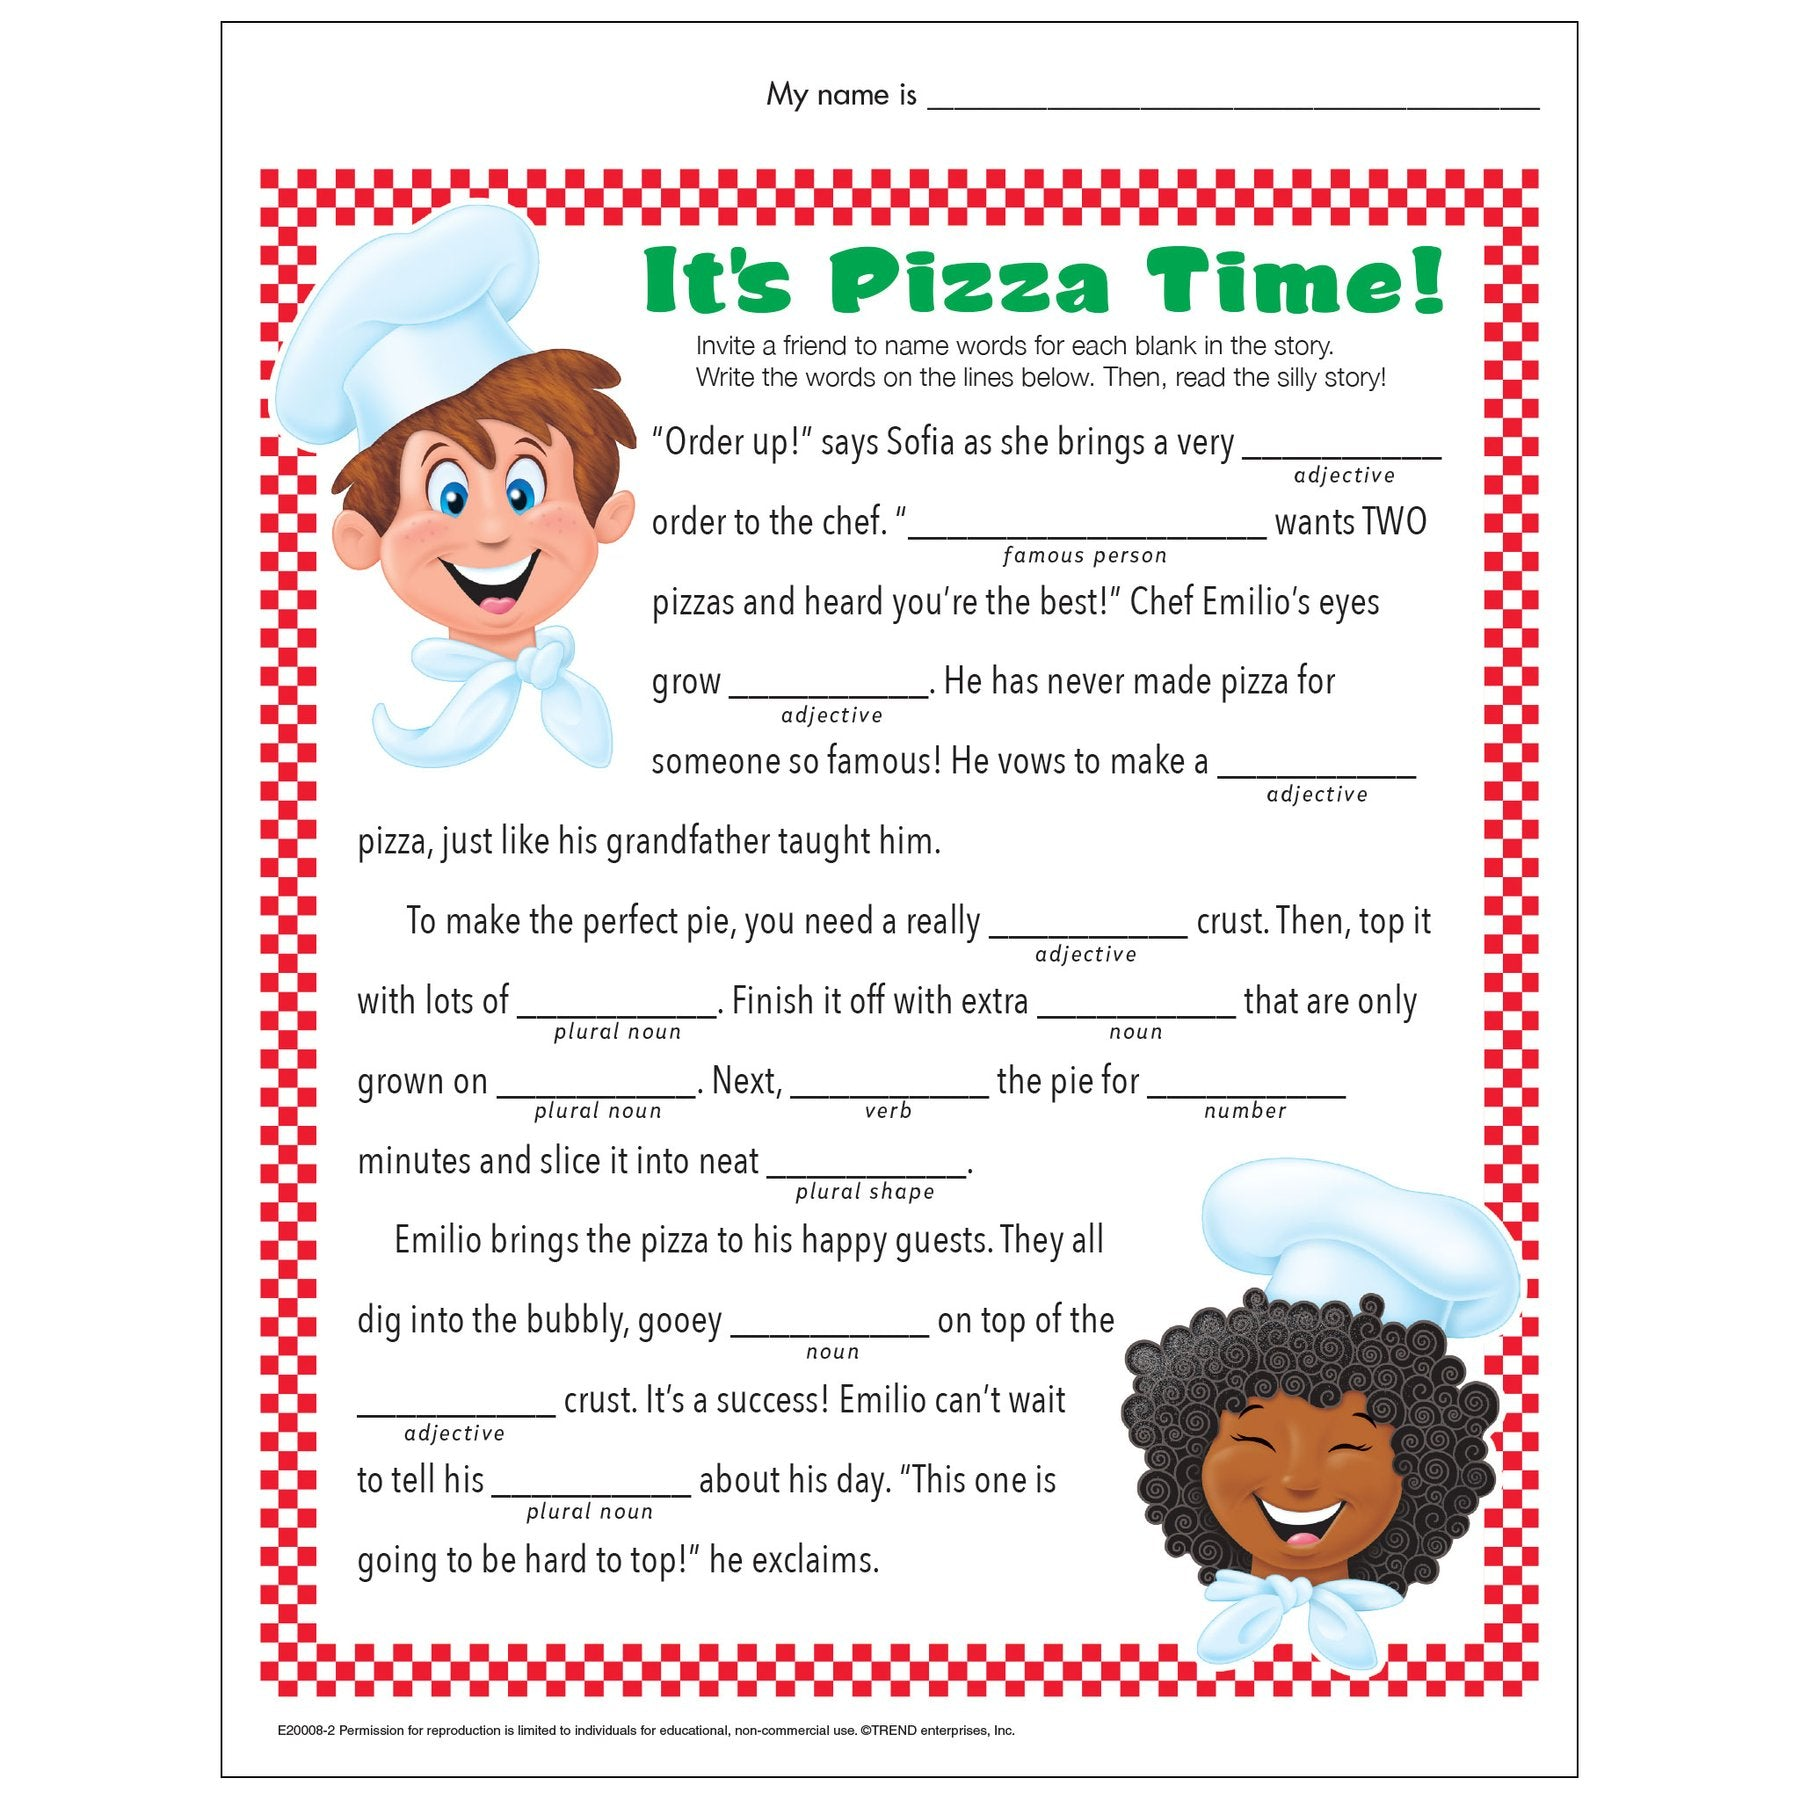 Pizza Time Silly Story Fill-in-the-blank free worksheet